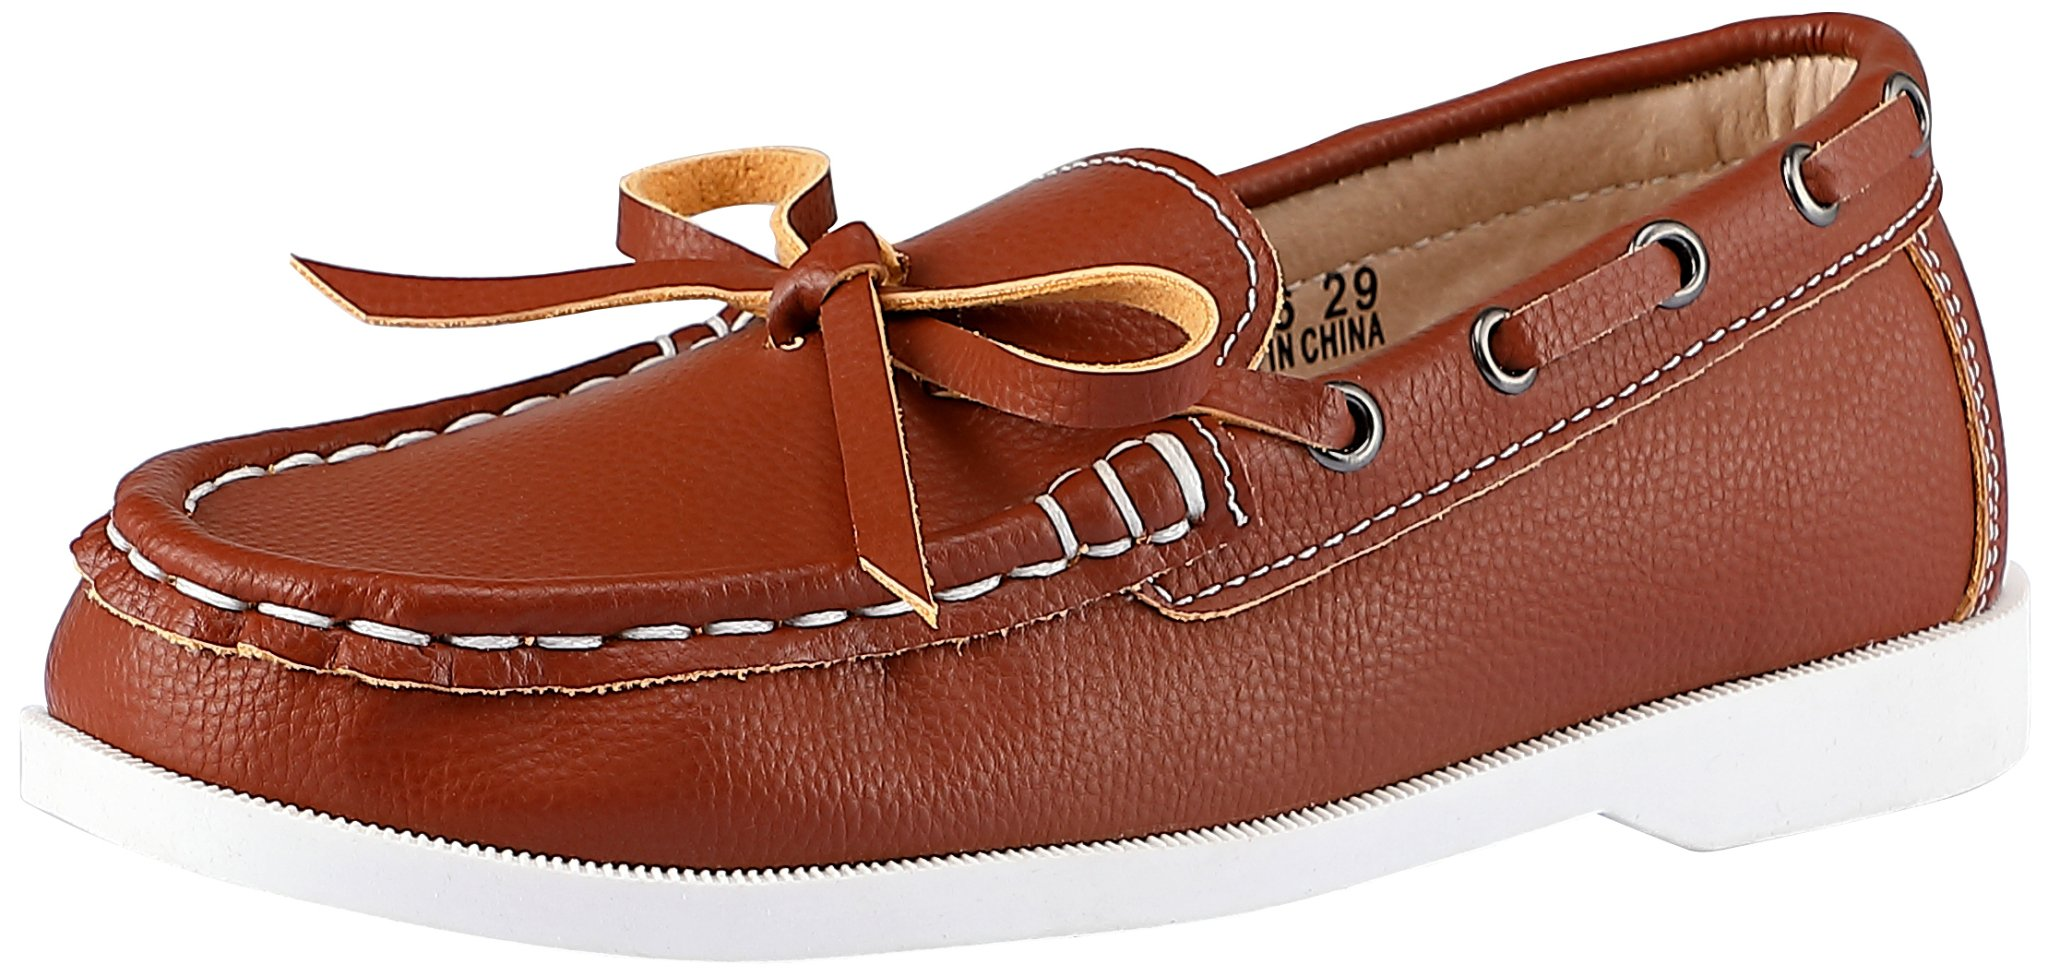 SKOEX Boy's Slip On Boat Deck Shoe Classic Casual Loafer (Toddler/Little Kid) US Size 2.5 Brown(B)